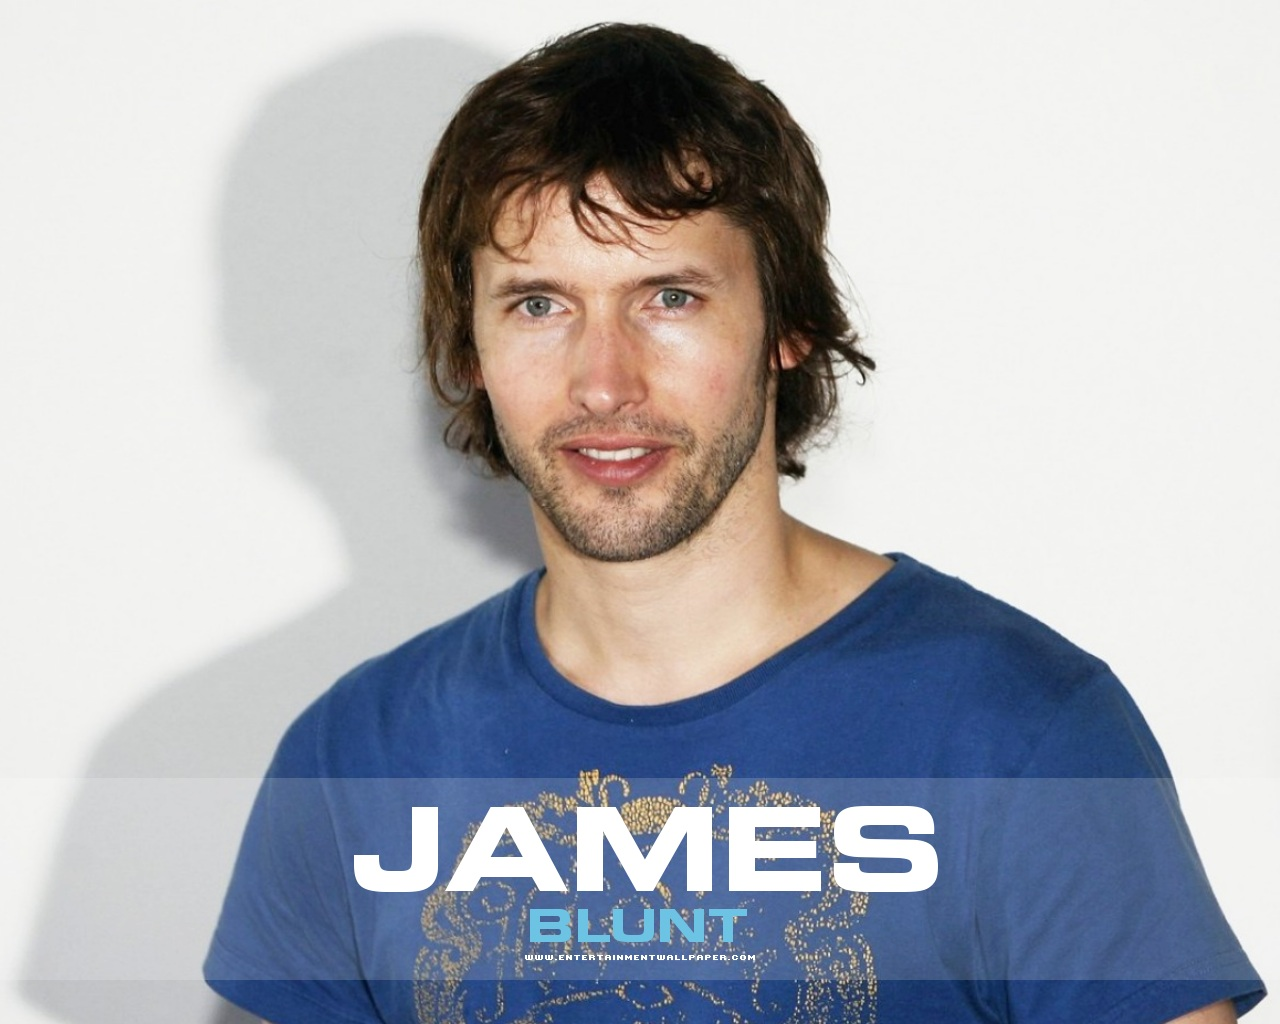 james blunt - james blunt wallpaper  646595